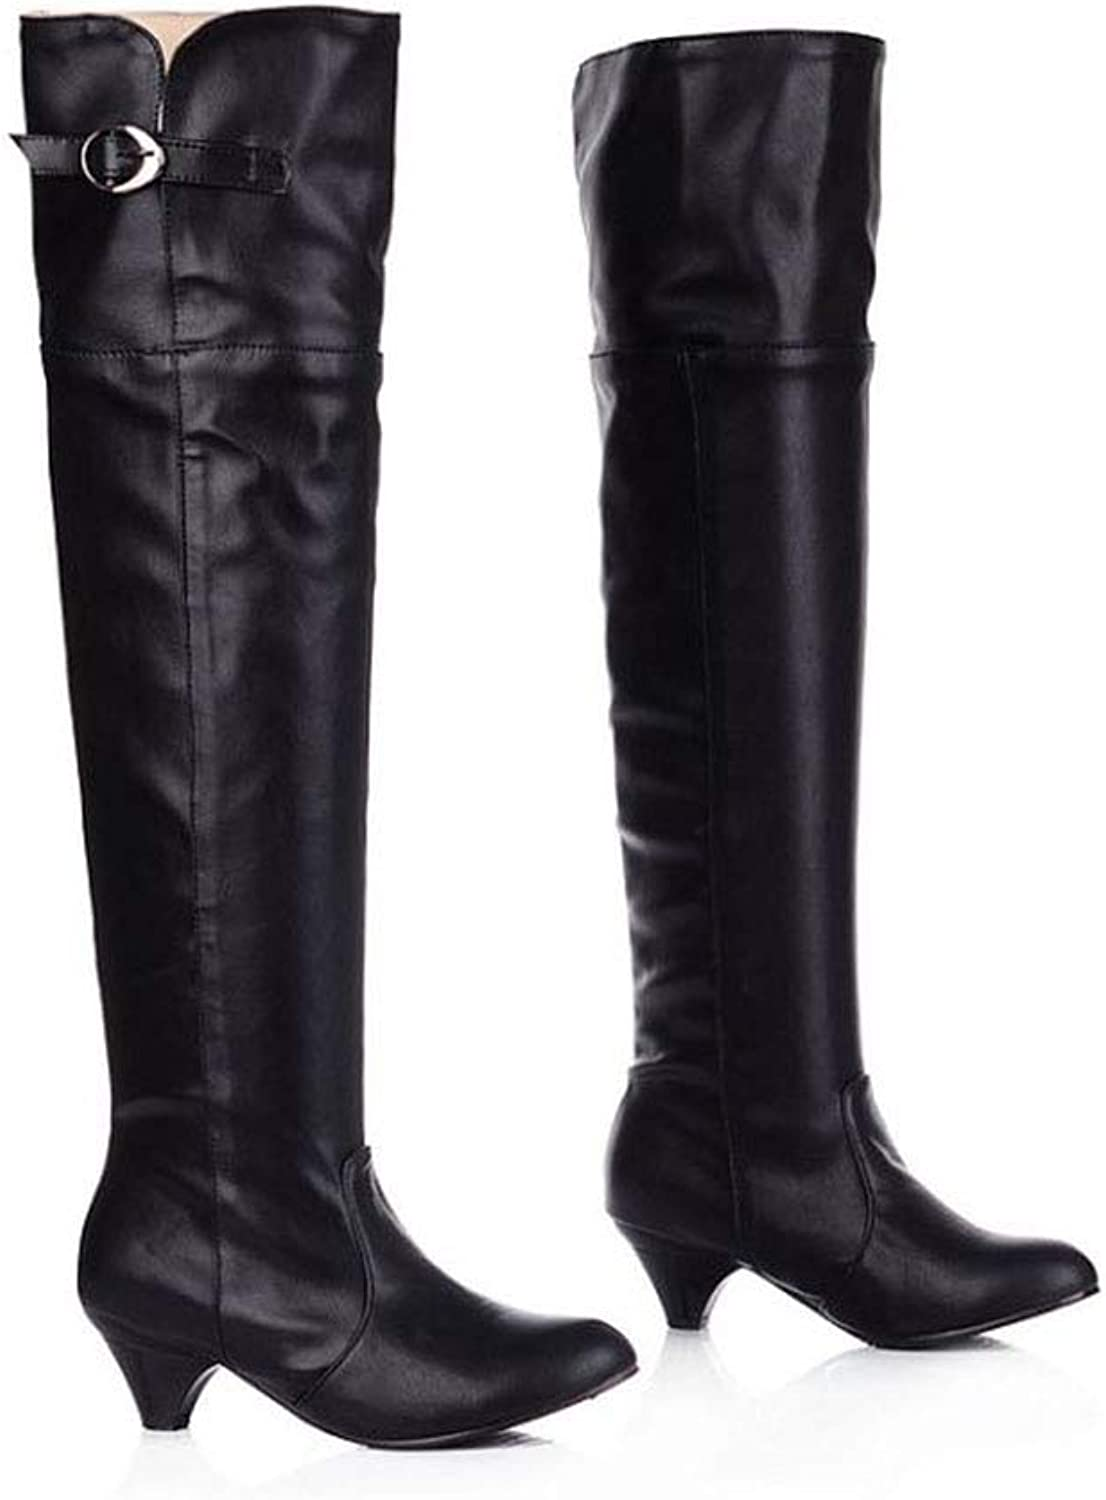 GONGFF Fashion Women's Boots Mid-Heeled Boots Large Size Boots Over The Knee Boots Large Size